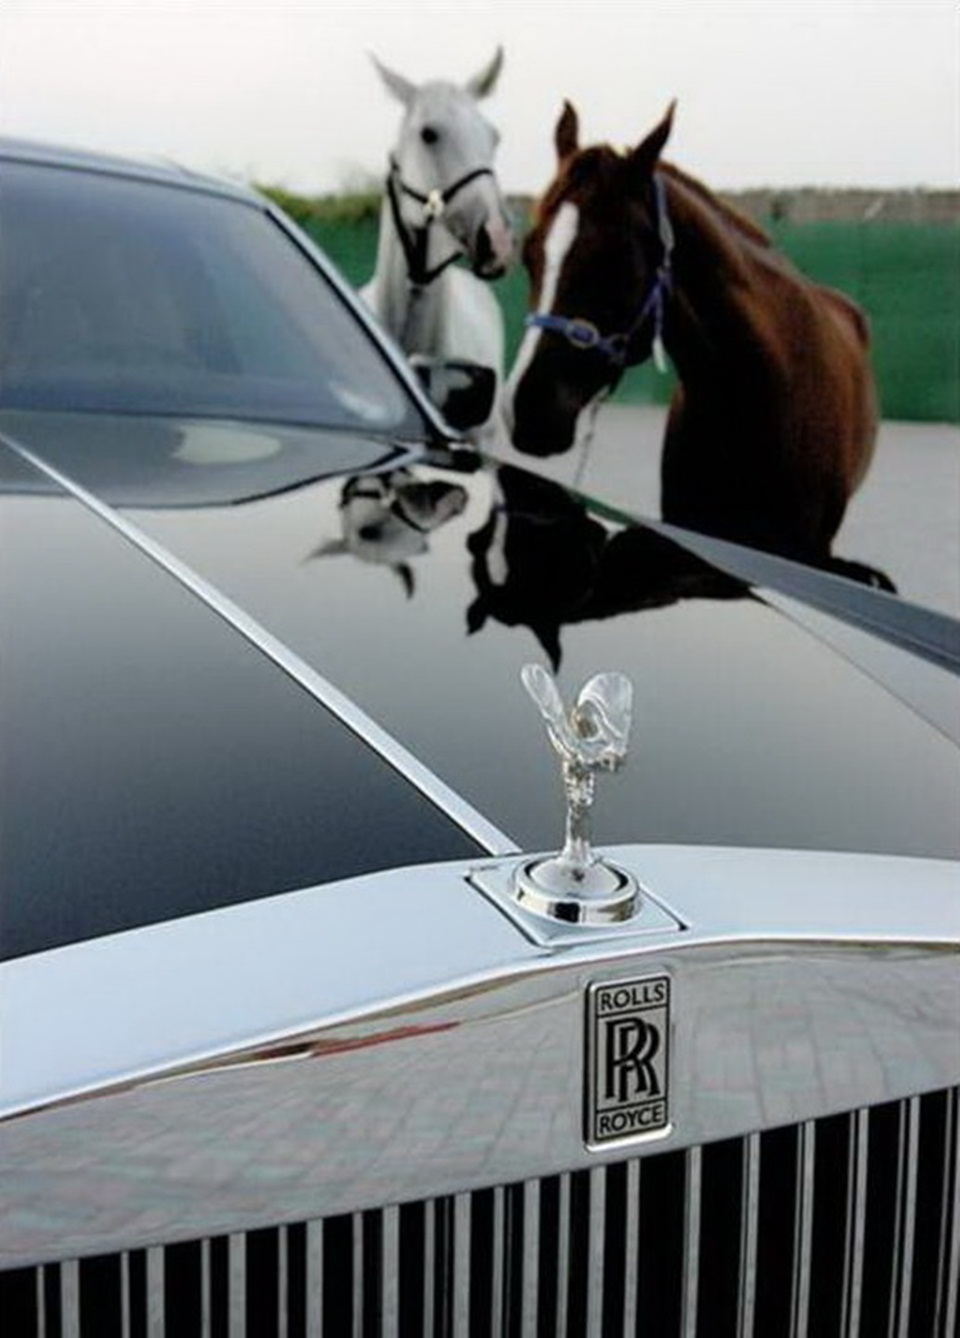 rolls-royce-phantom-photos- (11)